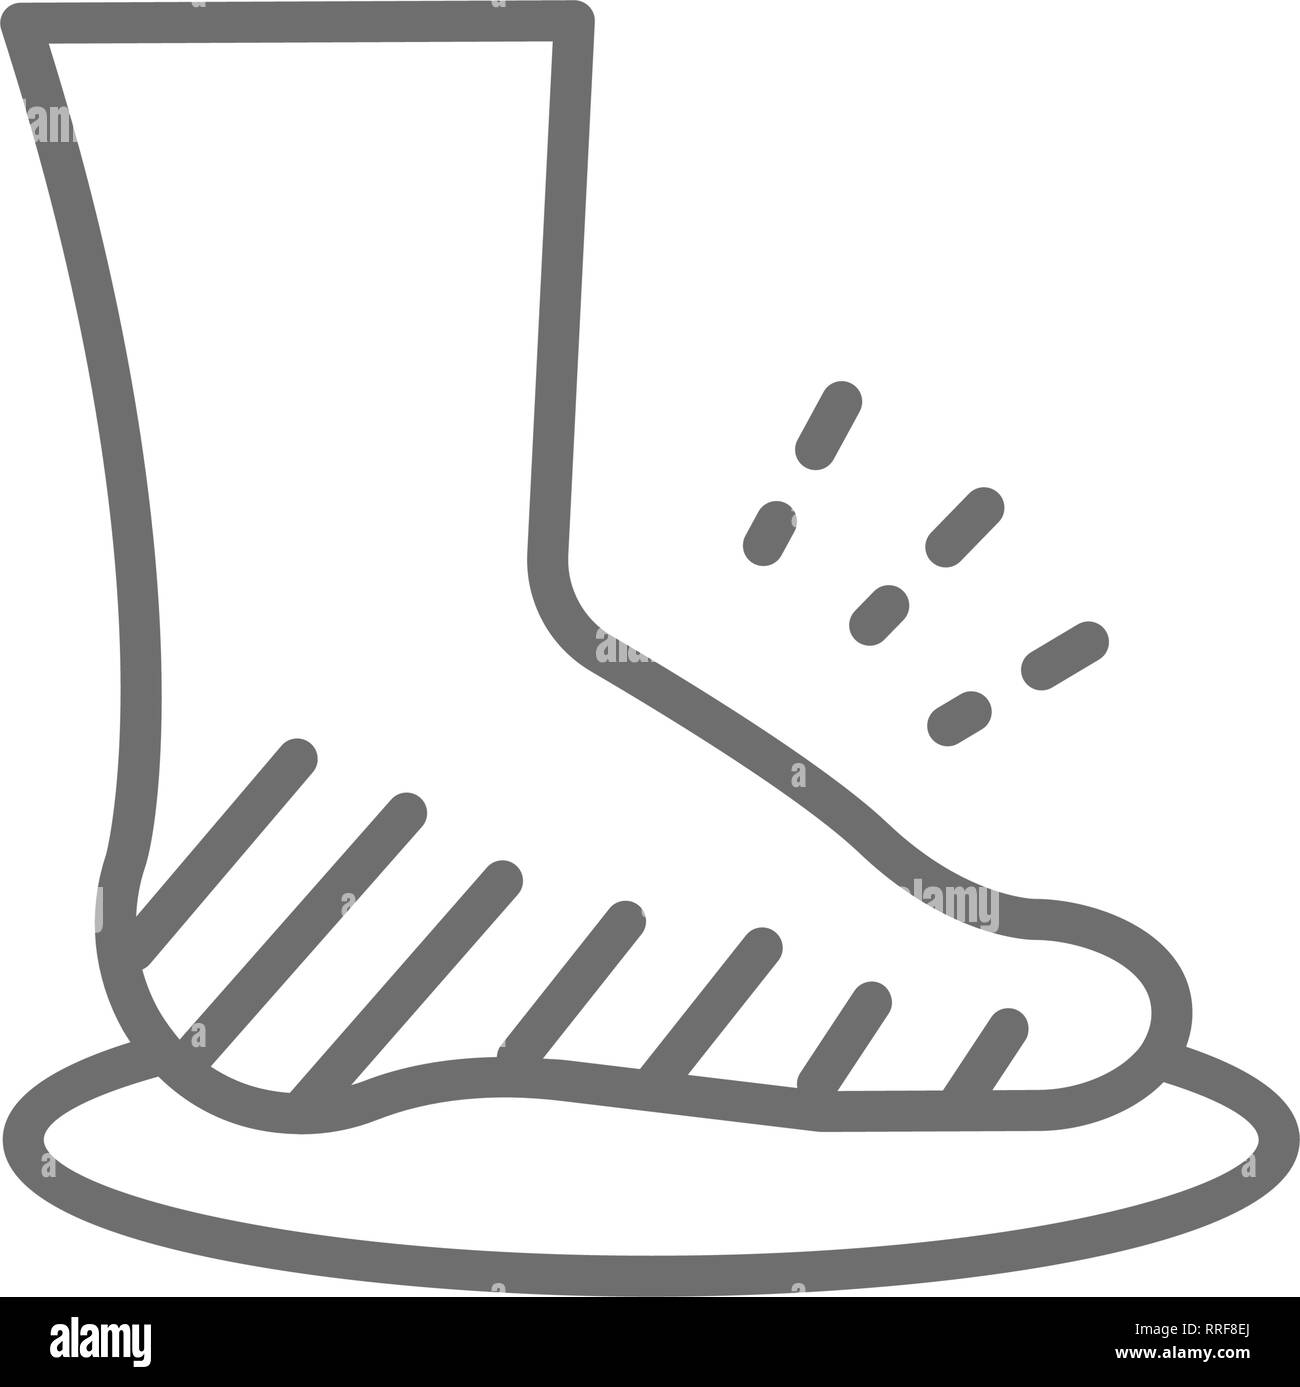 Leg swelling, edema, obesity, fat foot line icon. - Stock Image